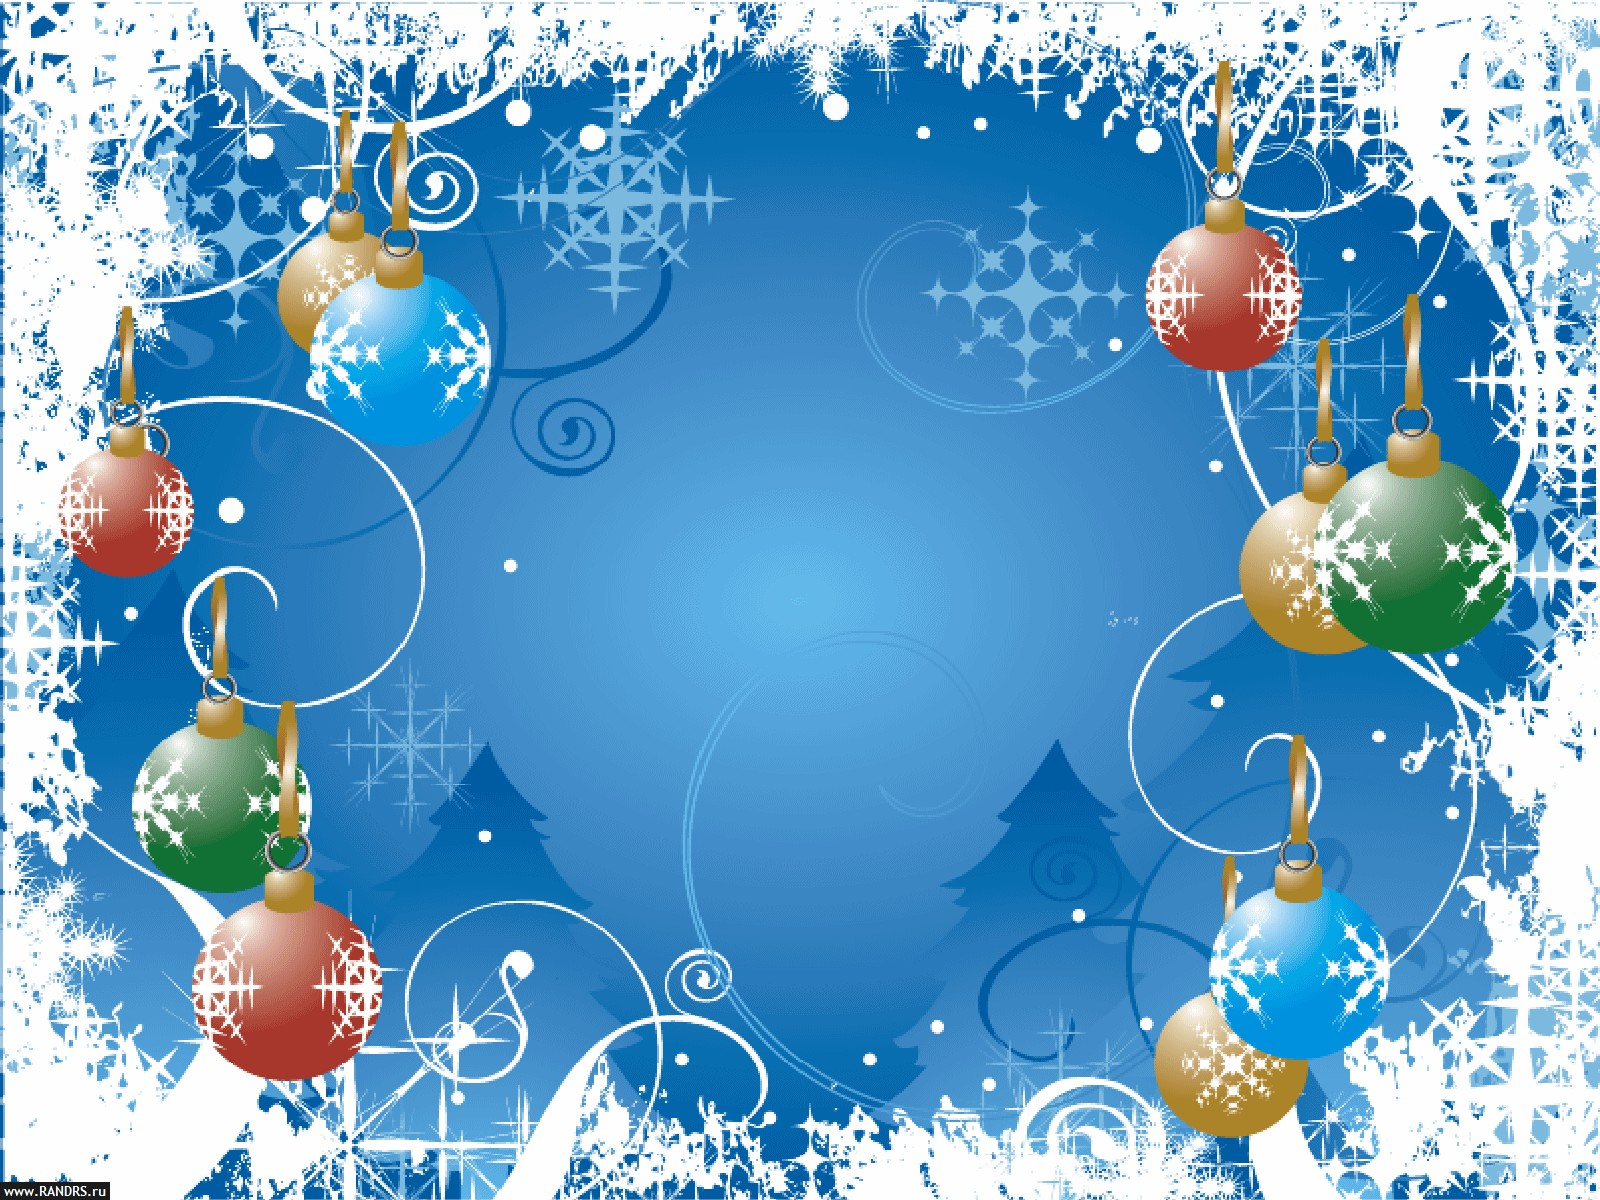 Download Free Christmas Music Pictures Wallpapers